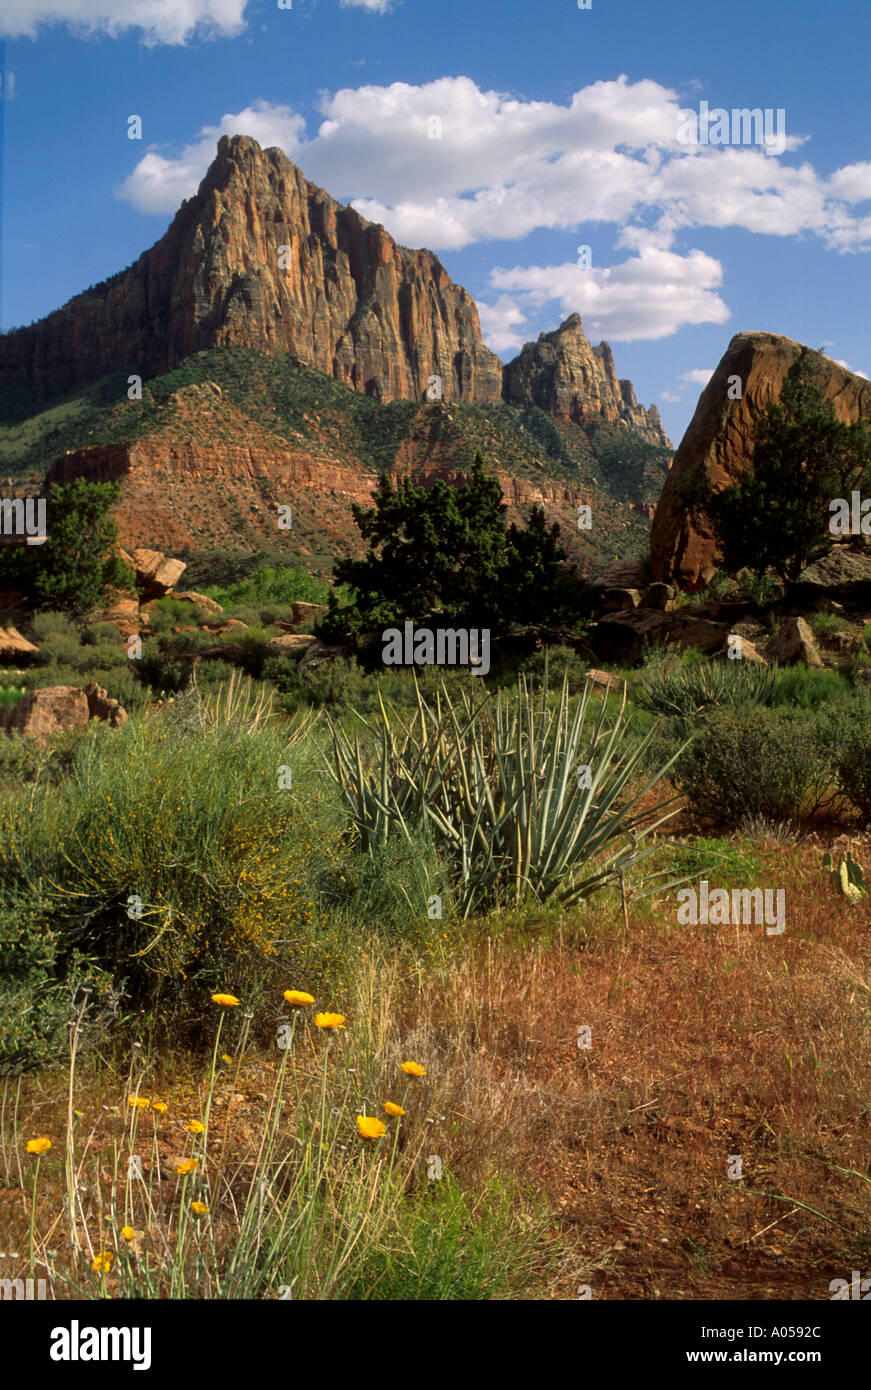 PZ-5 WATCHMAN MOUNTAIN AND FLOWERS - Stock Image